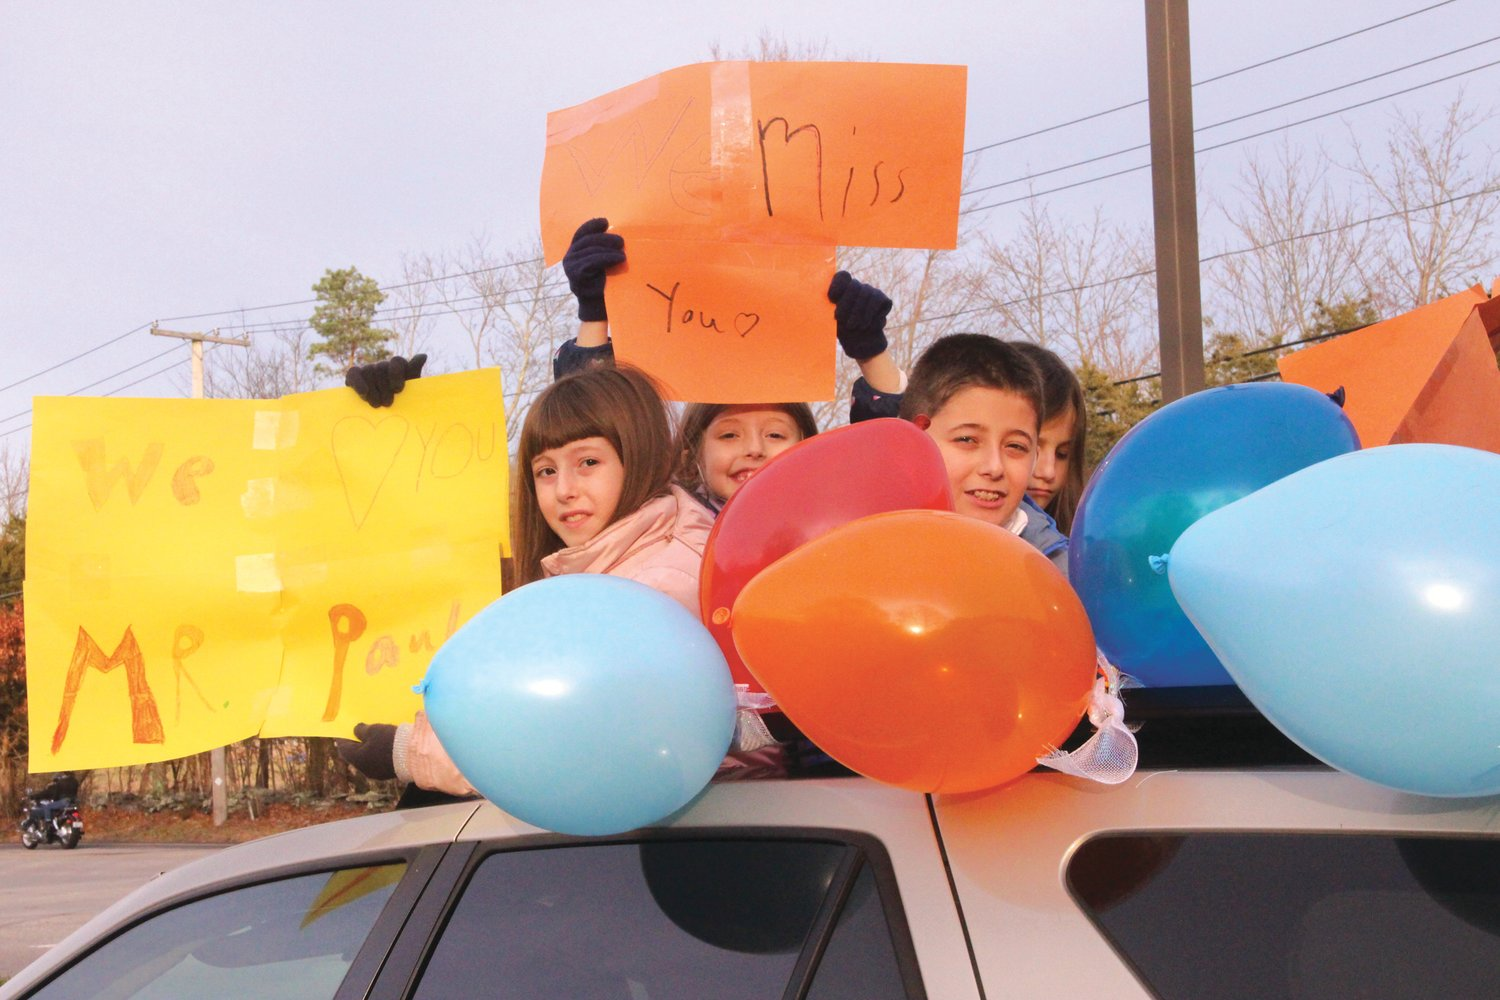 WHAT'S A PARADE WITHOUT BALLOONS? Spencer, Carina, Adriana Carlson and Giuliana Ciotti set the festive